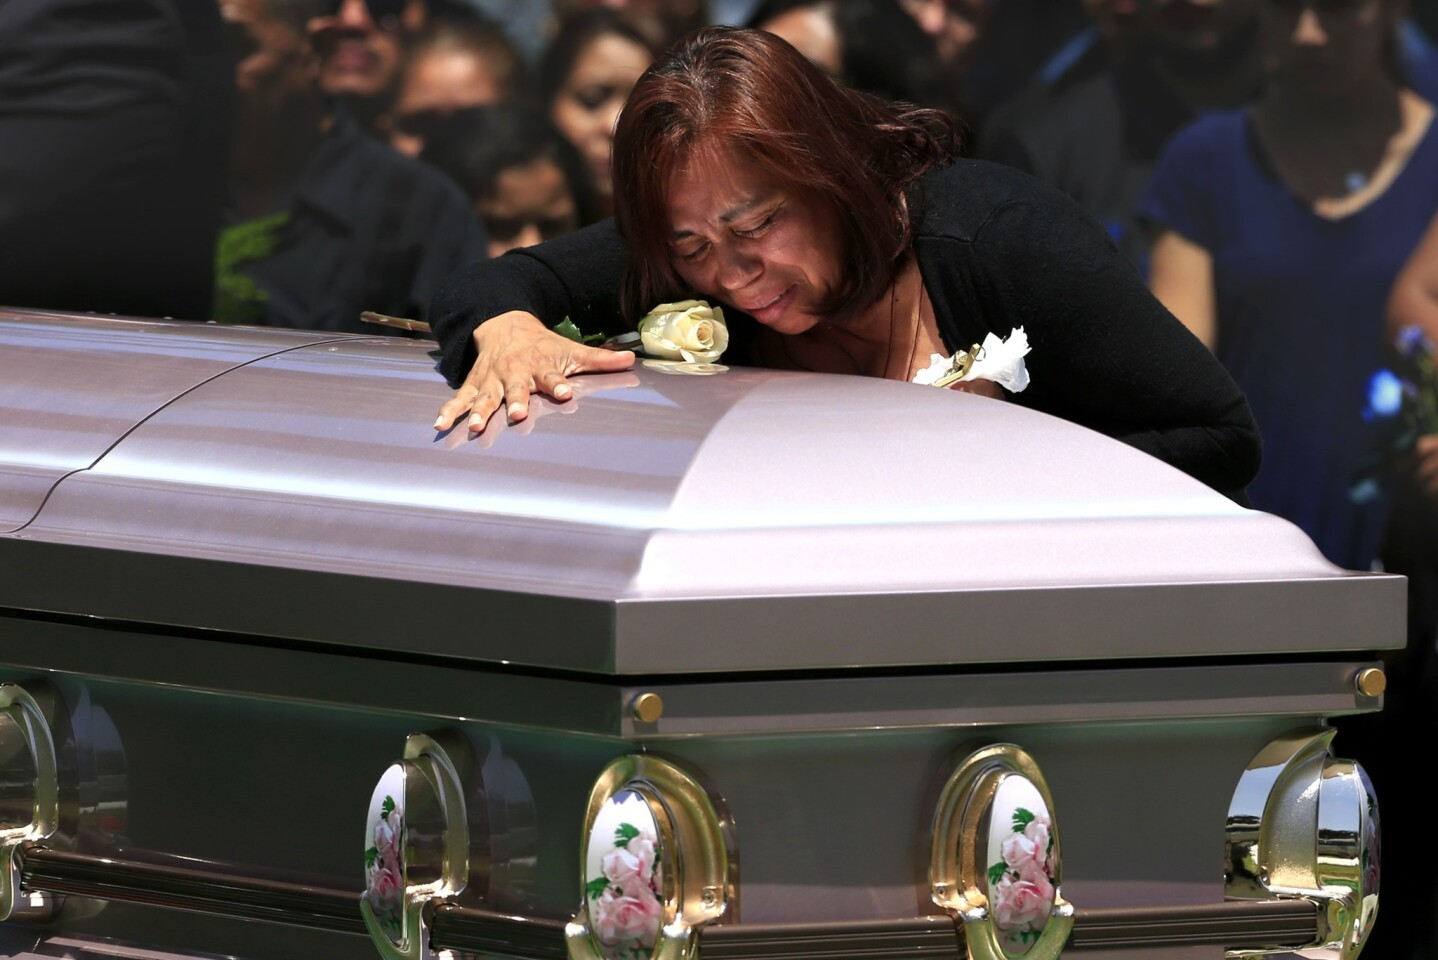 Macrina Reyes cries while she places a flower on the coffin of her transgender daughter, Zoraida Reyes, 28, during graveside services at Santa Ana Cemetery on June 23.